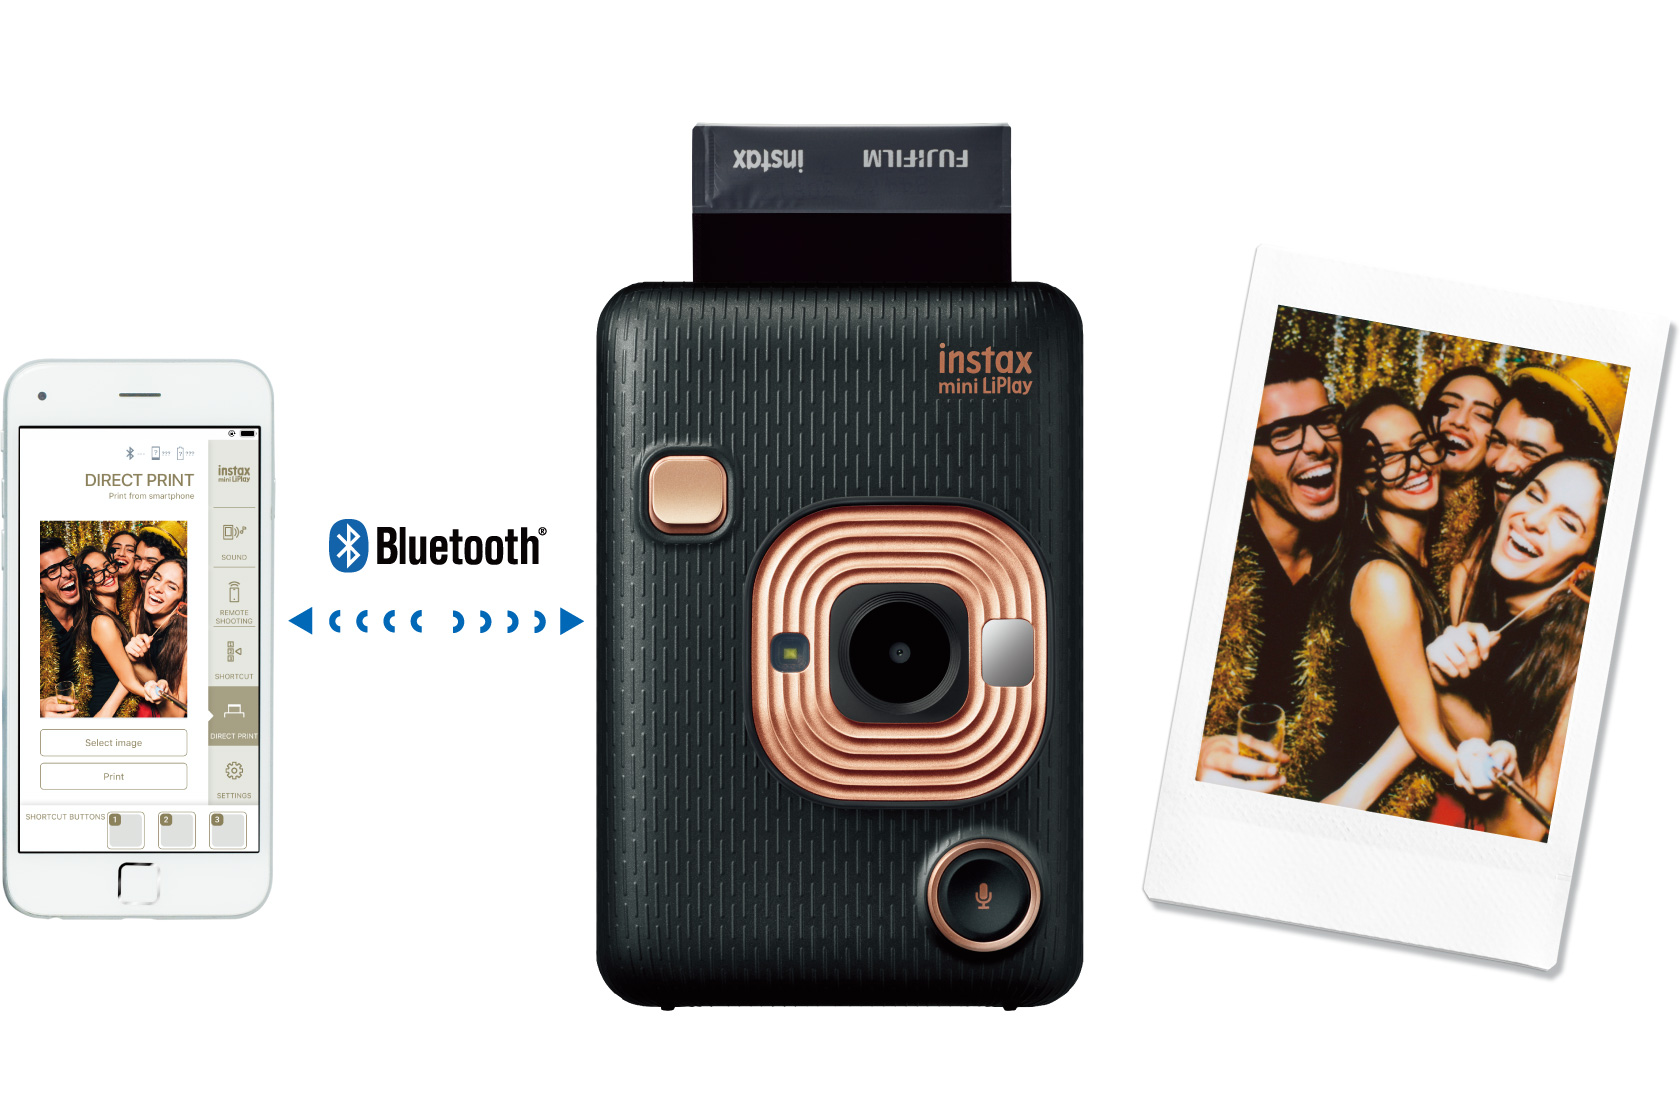 collage image of the phone and back LiPlay camera and picture of a group of young people